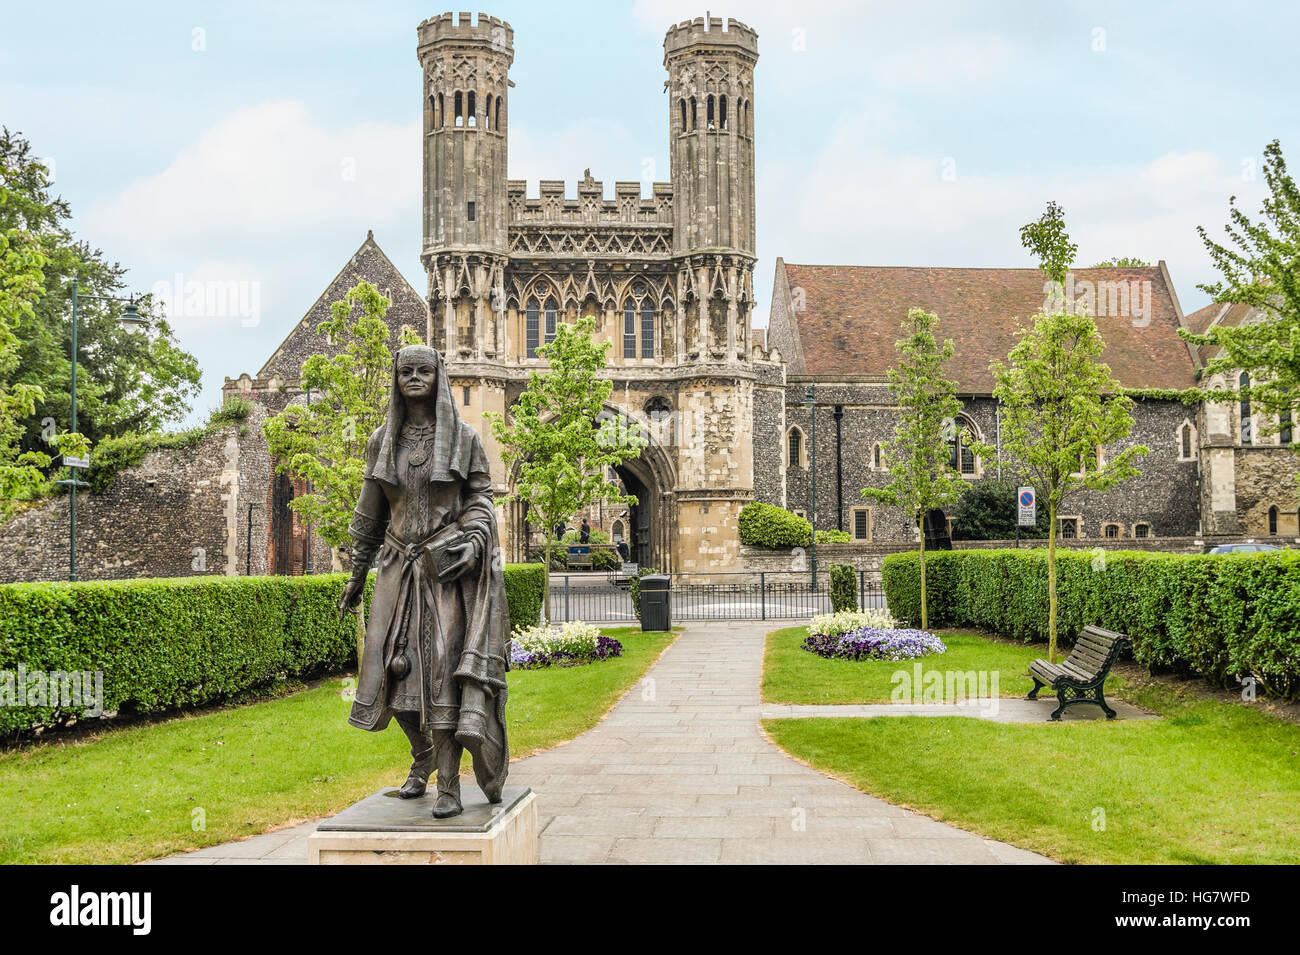 Statue of Bertha, Queen of Kent, princess of the Franks, in front of the entrance gate to Kings School in Canterbury. - Stock Image